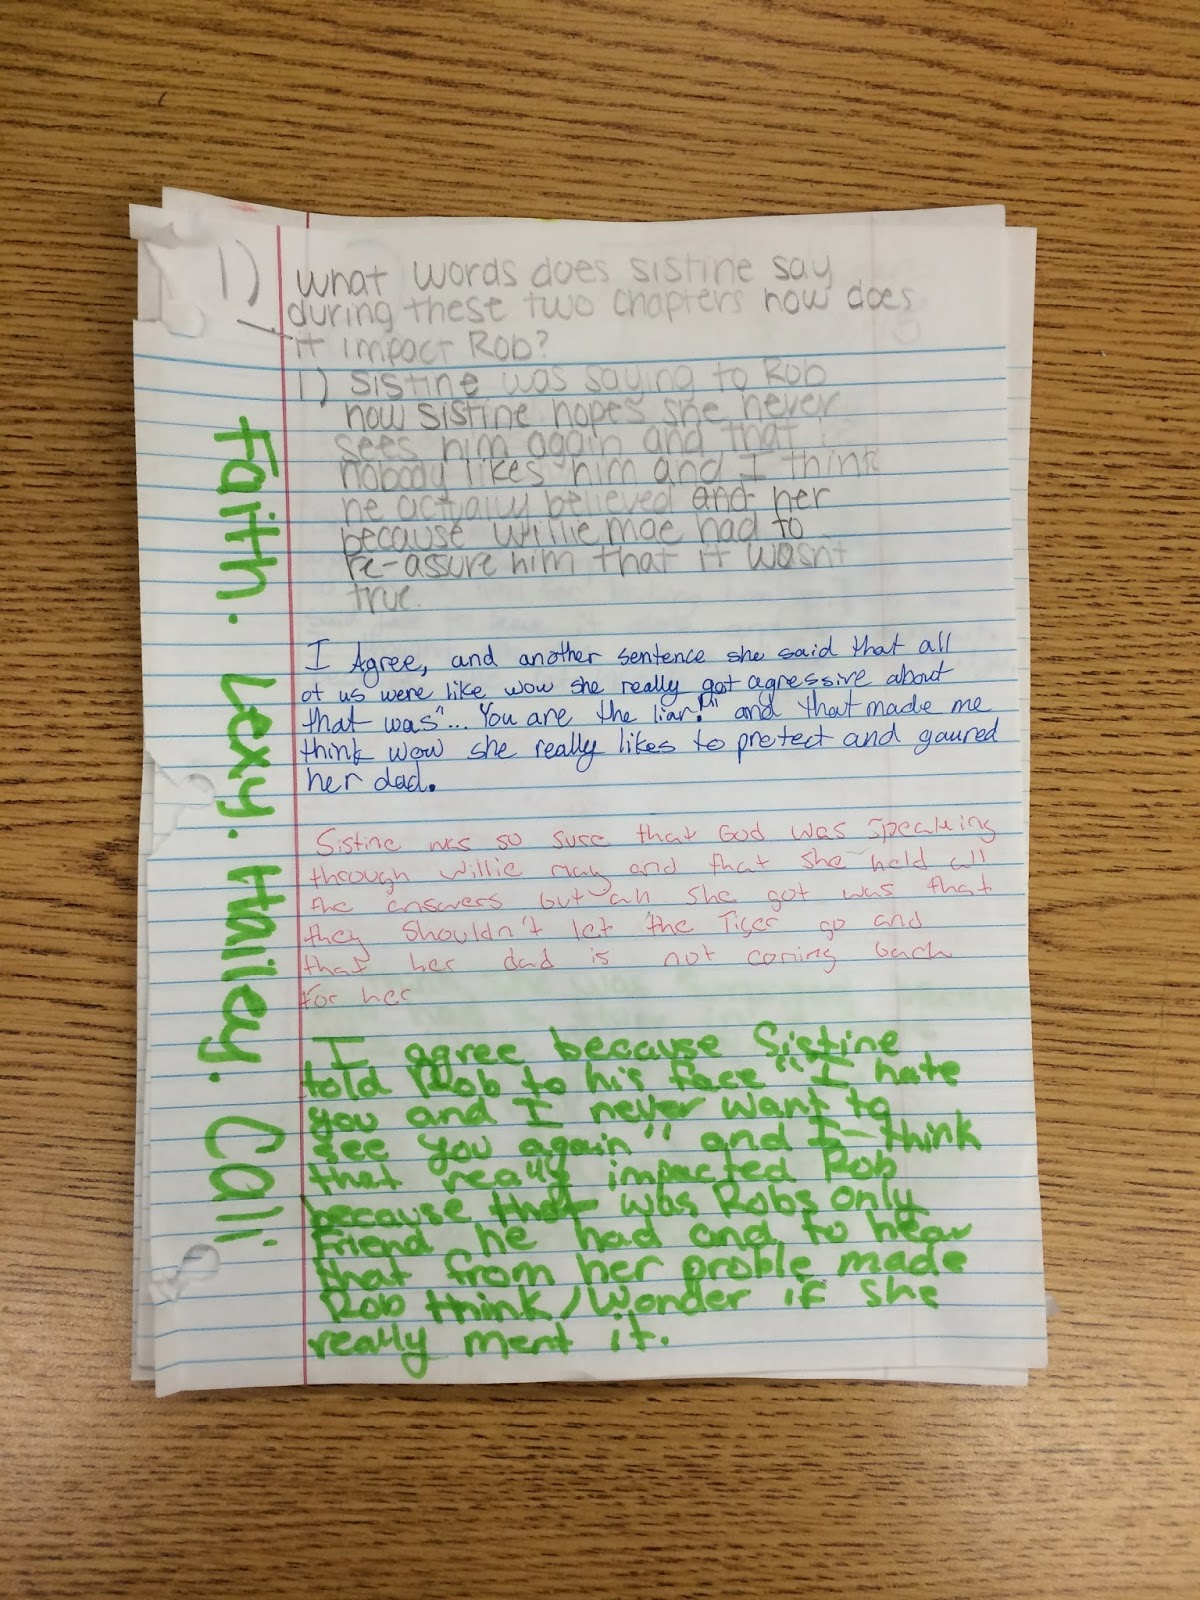 human services research article discussion essay sample